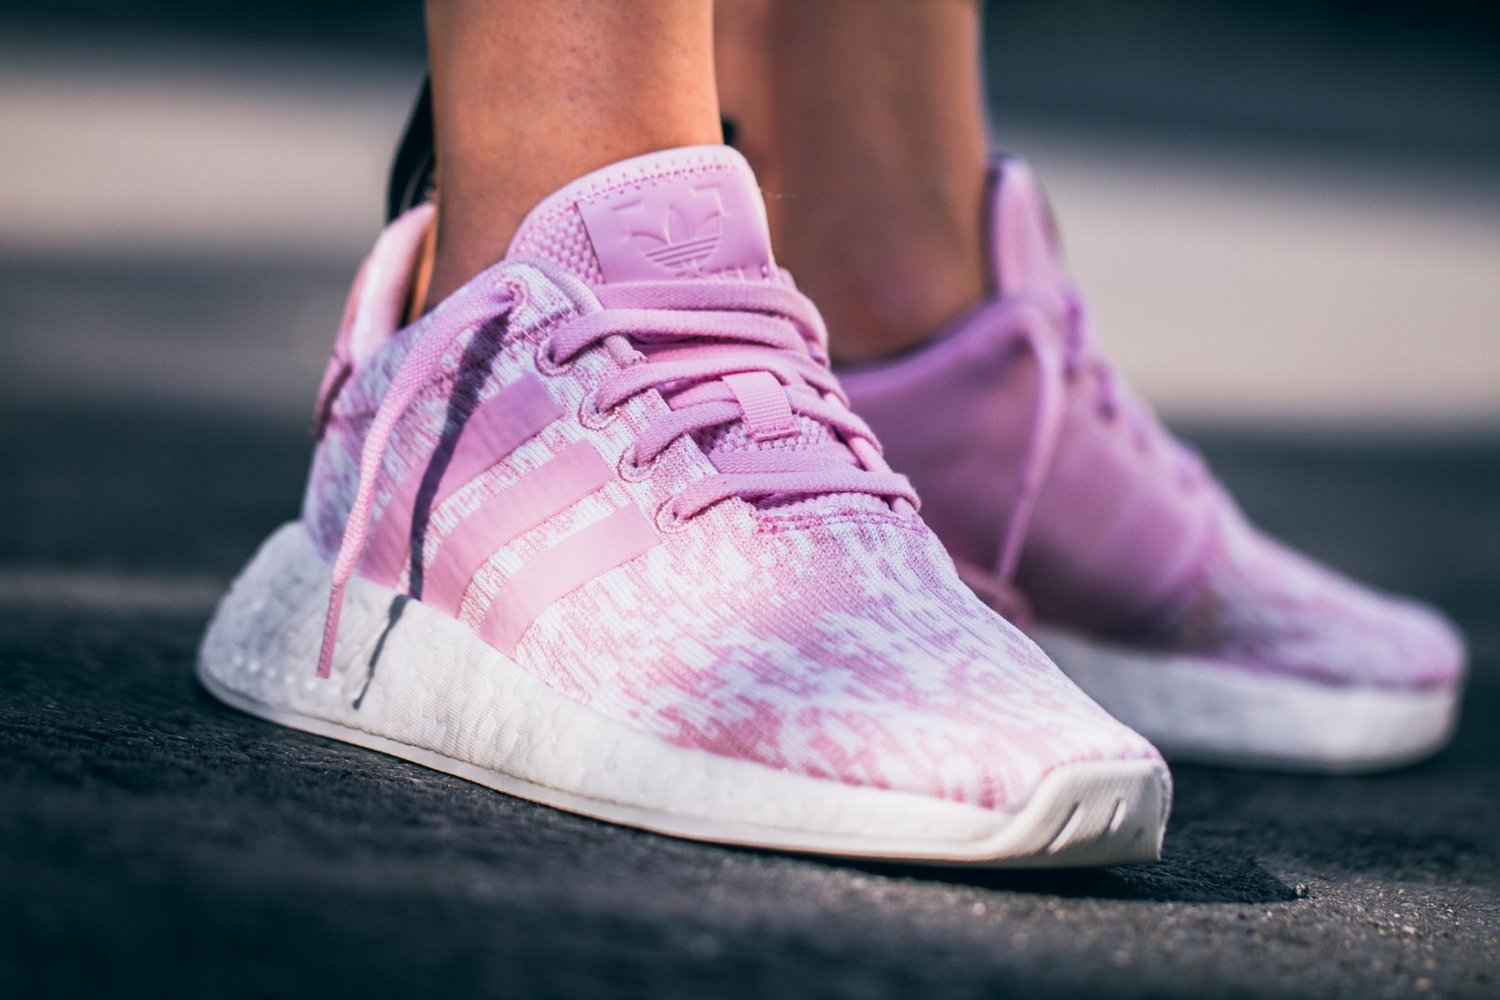 ad53cbcdcdb50 Now Available  Women s adidas NMD R2 Knit